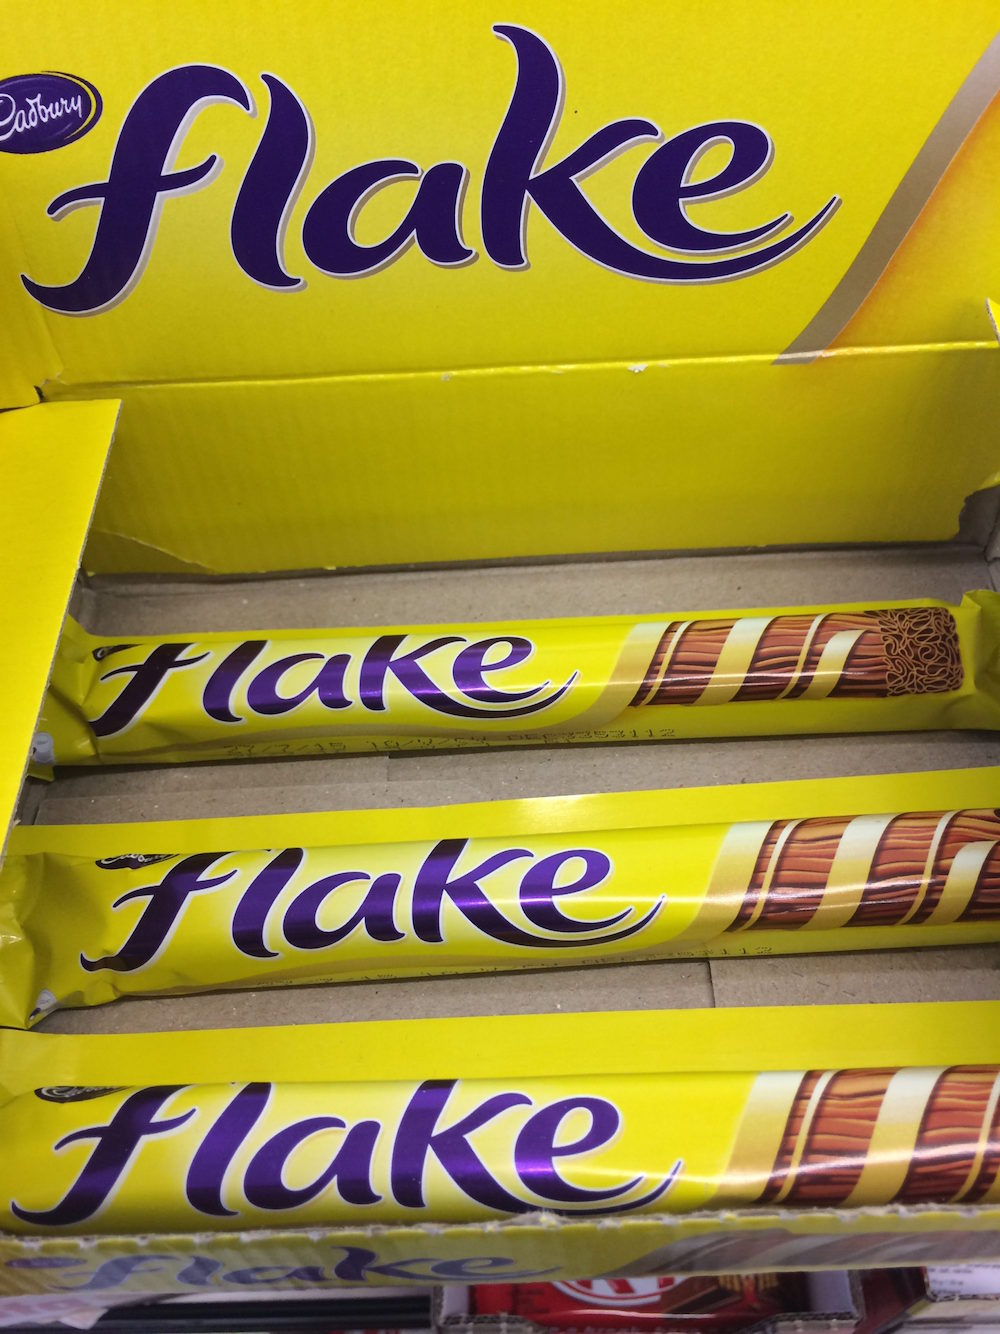 It's a candy bar, made with flaky chocolate